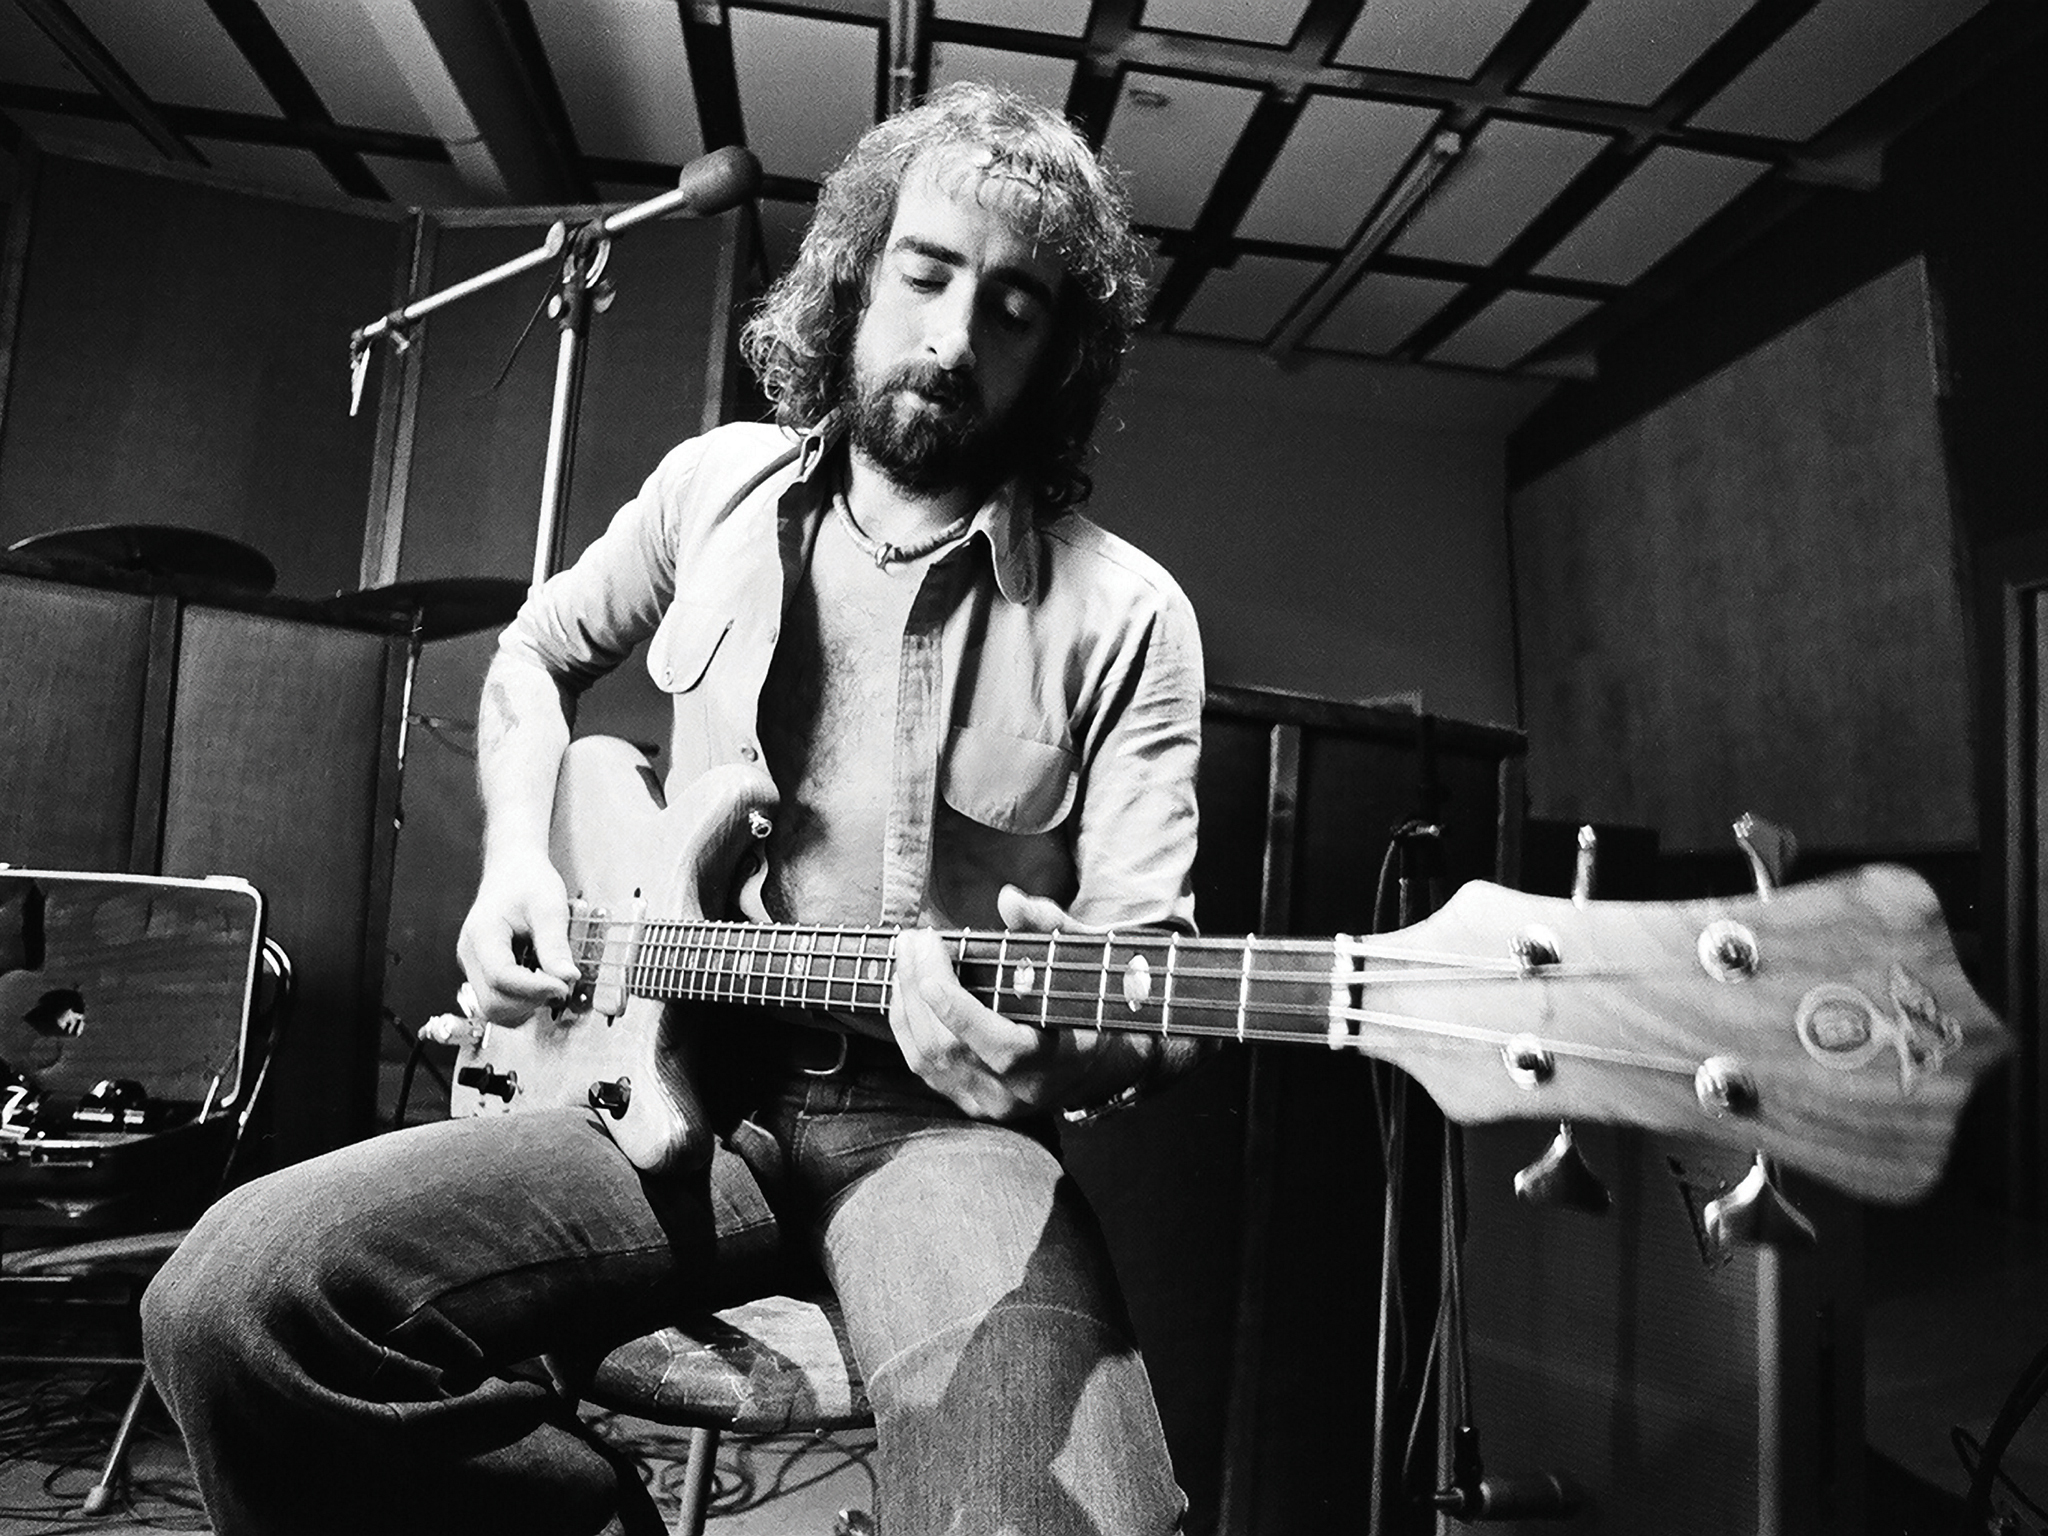 John McVie of Fleetwood Mac